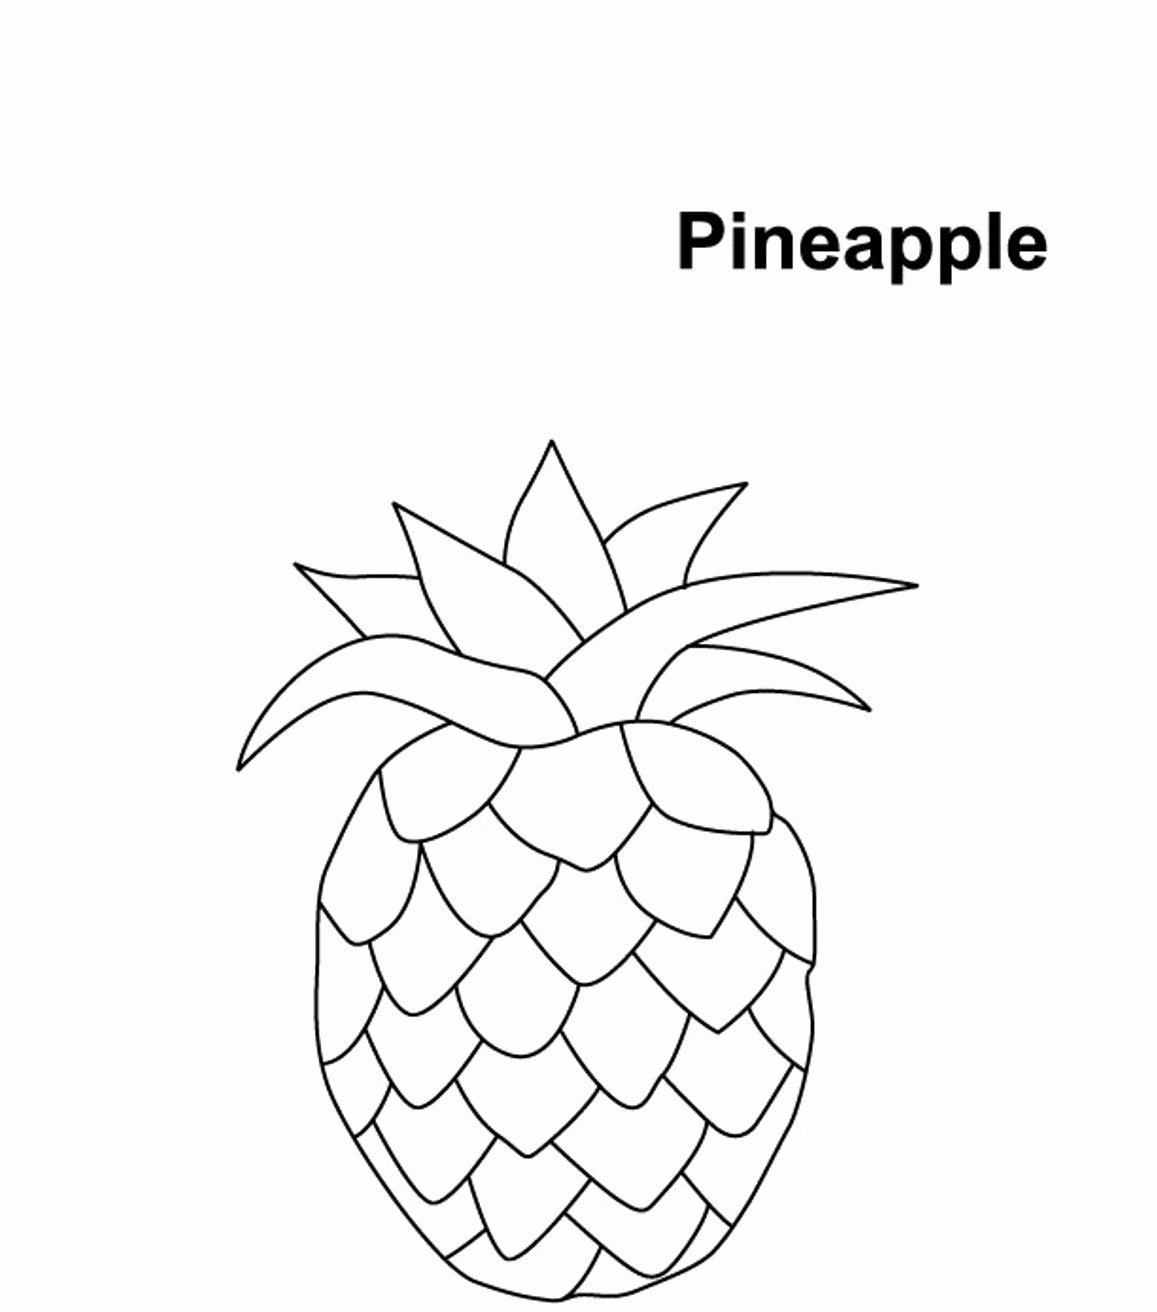 Pineapple Template Printable Unique Pineapple Coloring Pages